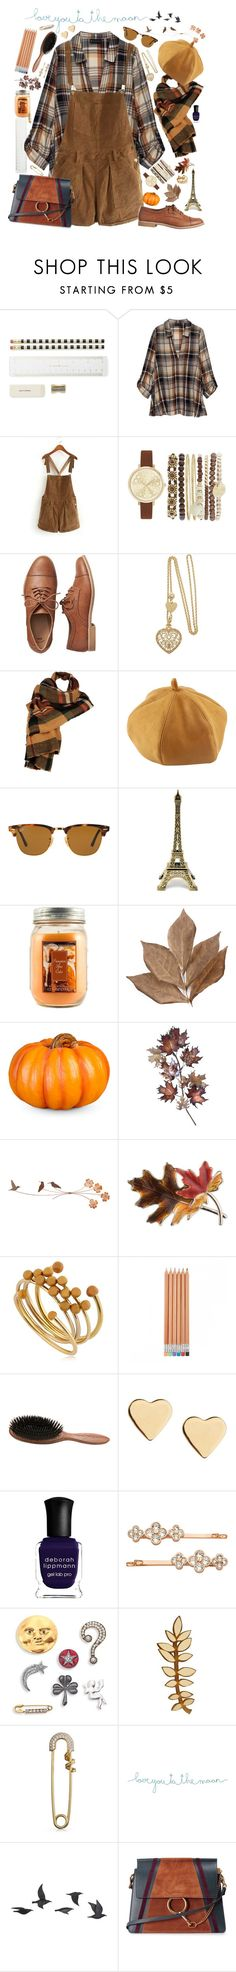 """""""Sweet Autumn"""" by blueonyx25 ❤ liked on Polyvore featuring Kate Spade, Bobeau, Jessica Carlyle, Gap, Wilsons Leather, Ray-Ban, Holiday Memories, Bliss Studio, Improvements and C. Jeré"""